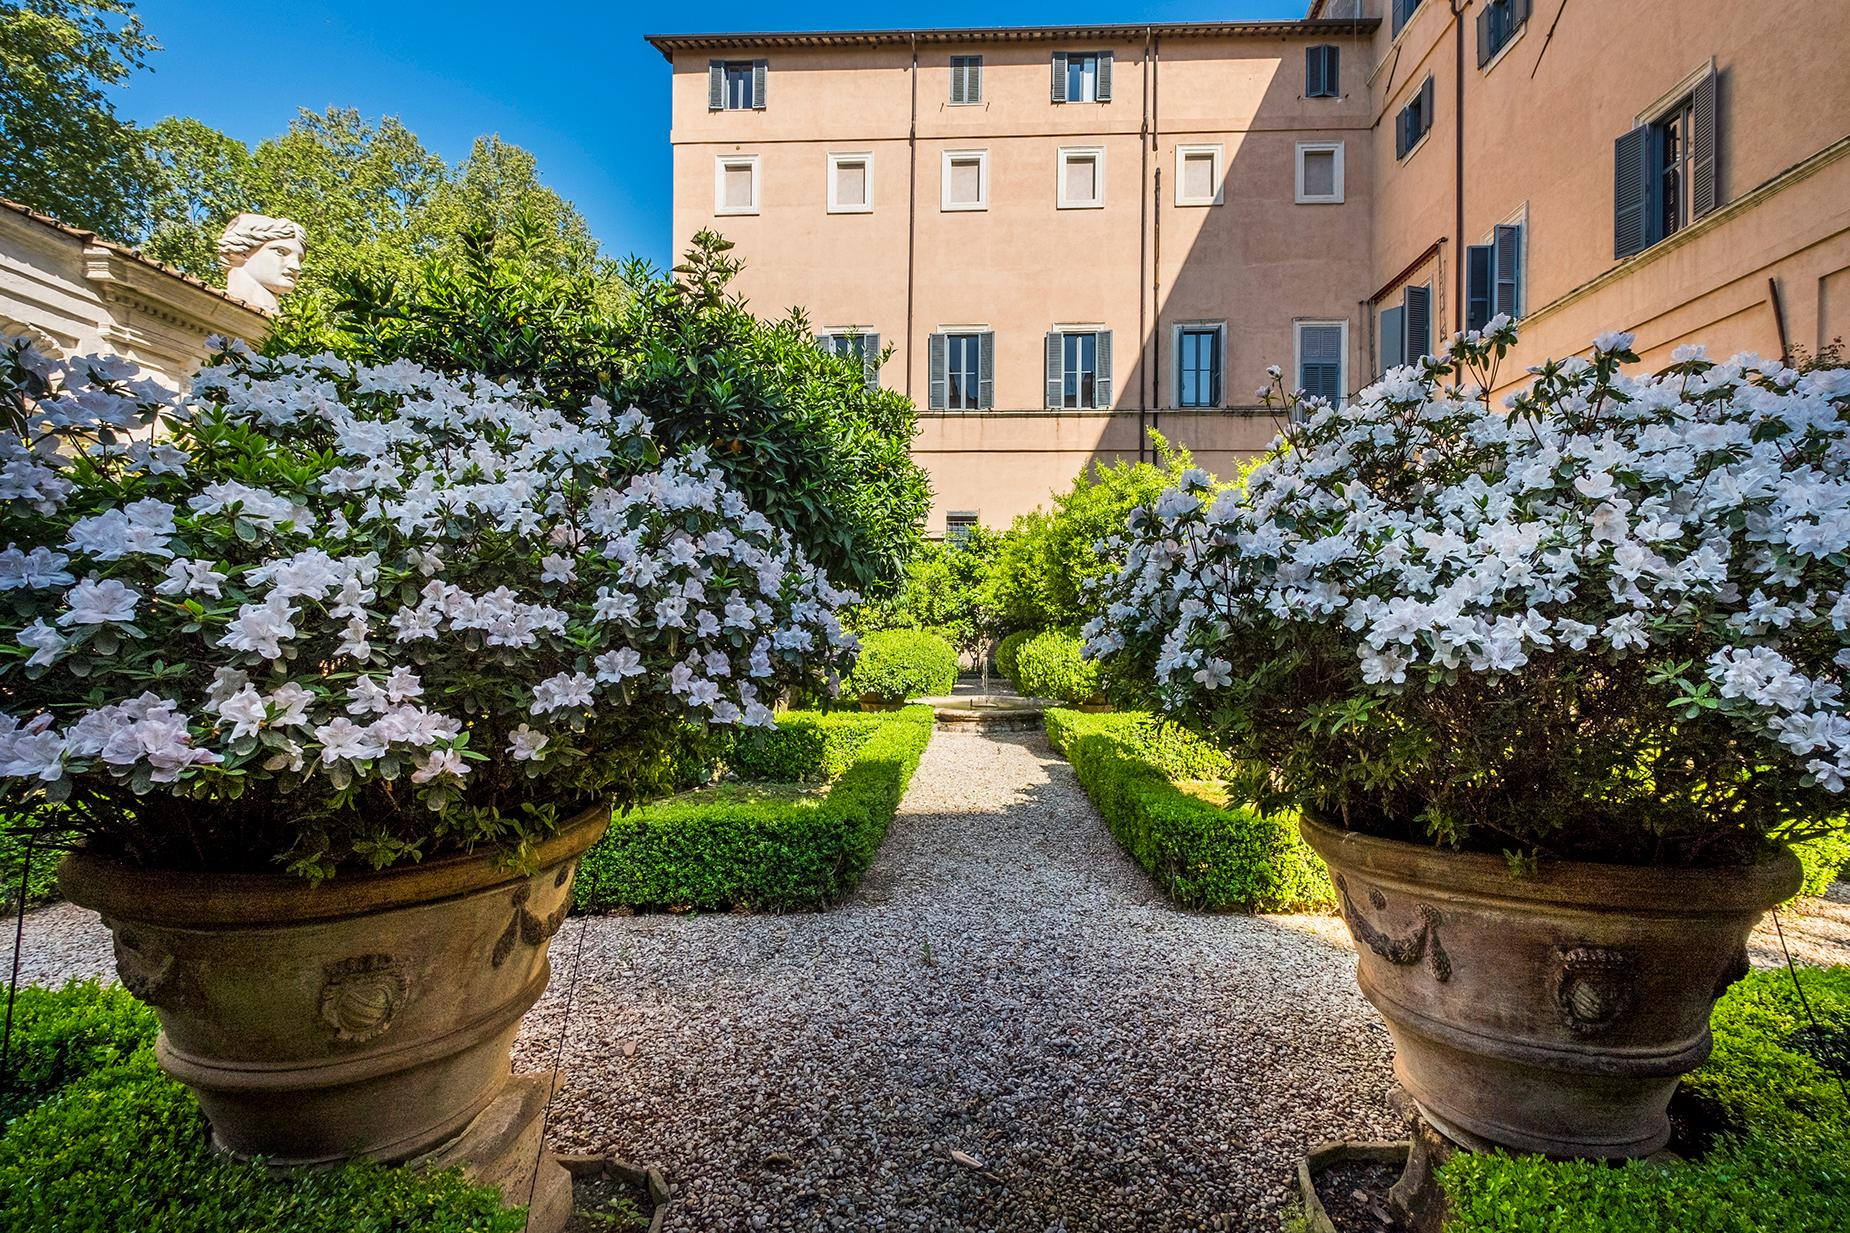 Palazzo Sacchetti, a pearl of the late reinassance in the heart of Rome - 10